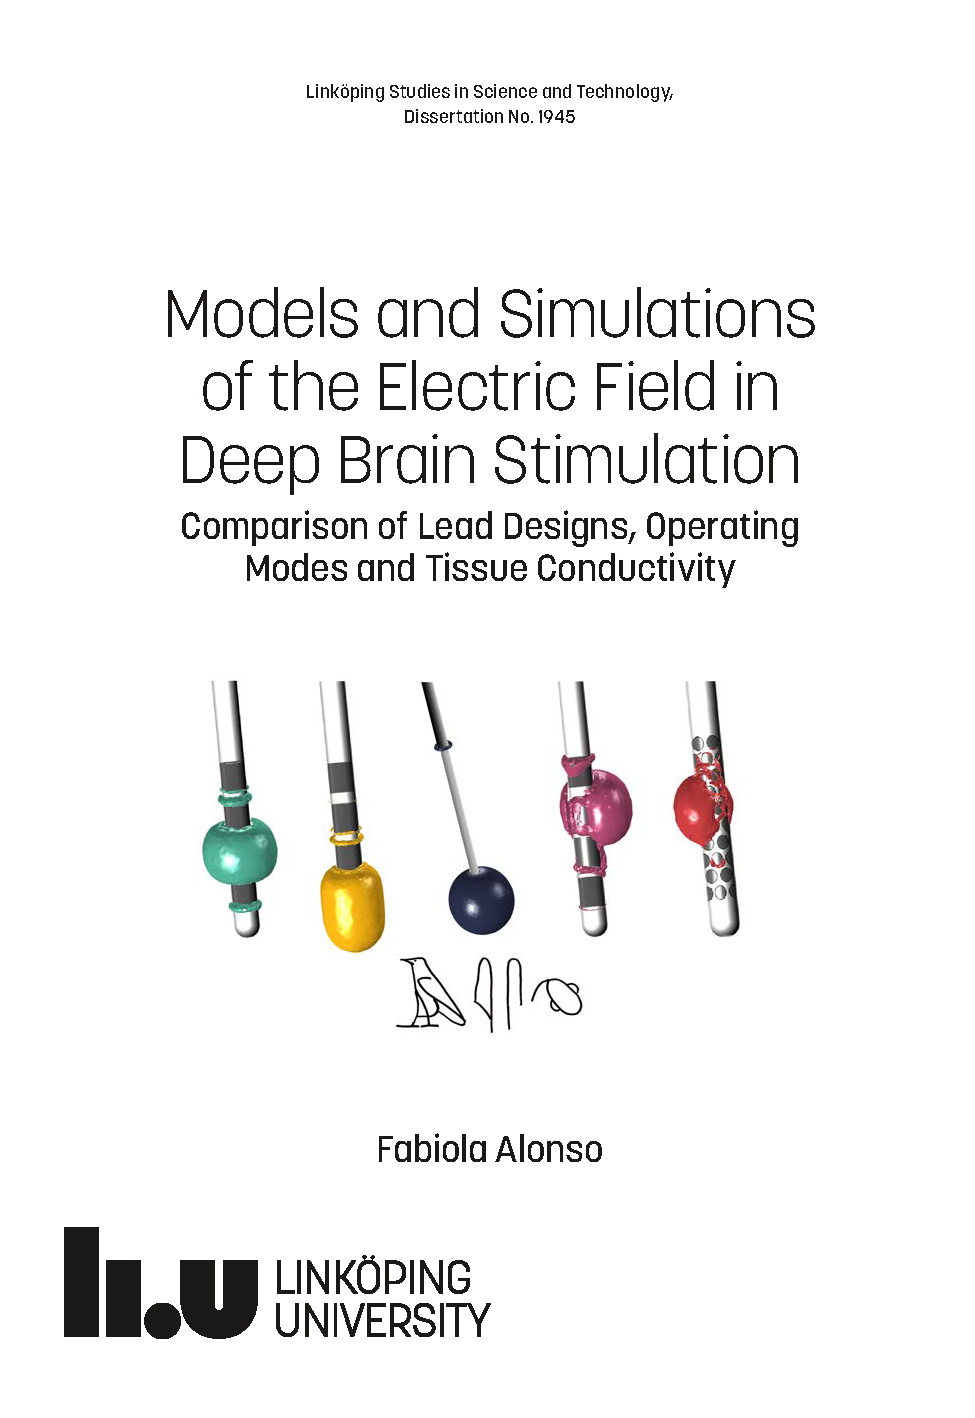 Diva Search Result Pmems Pll Clock Generators 4 Patient Specific Electric Field Simulations And Acceleration Measurements For Objective Analysis Of Intraoperative Stimulation Tests In The Thalamus